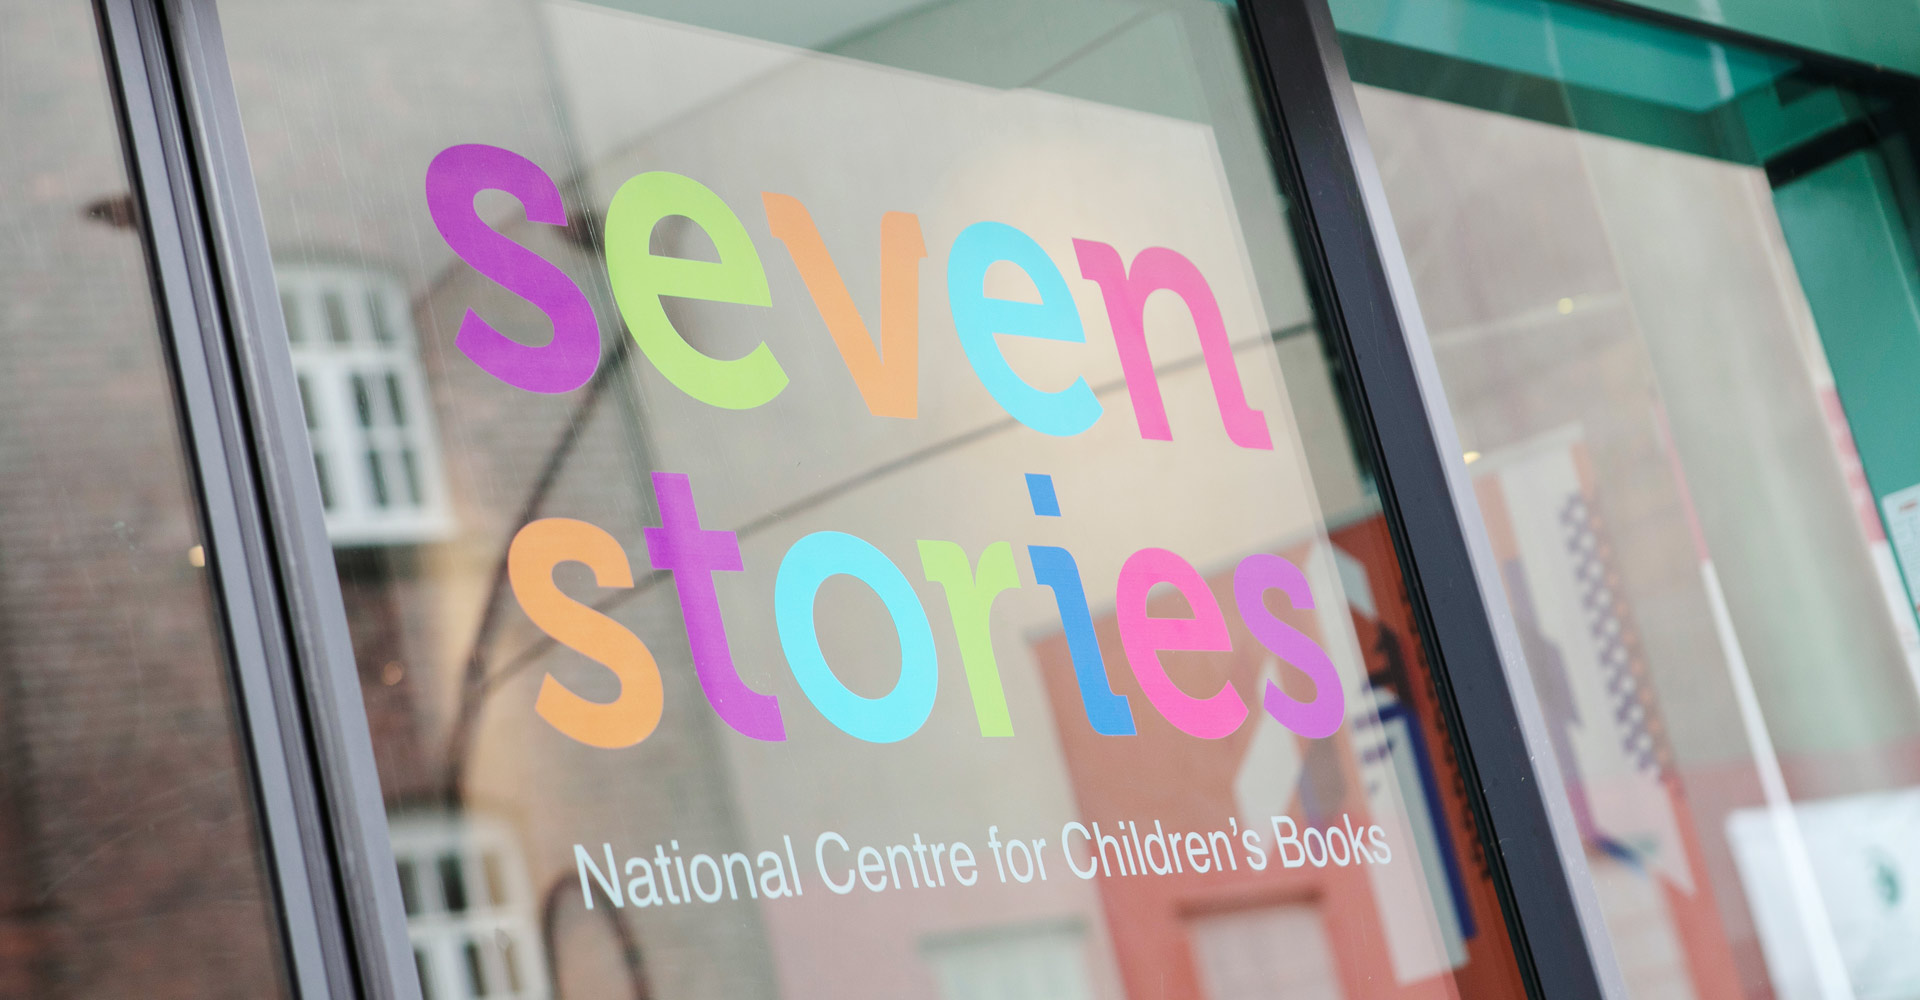 Photo of the Seven Stories National Centre for Children's Books building